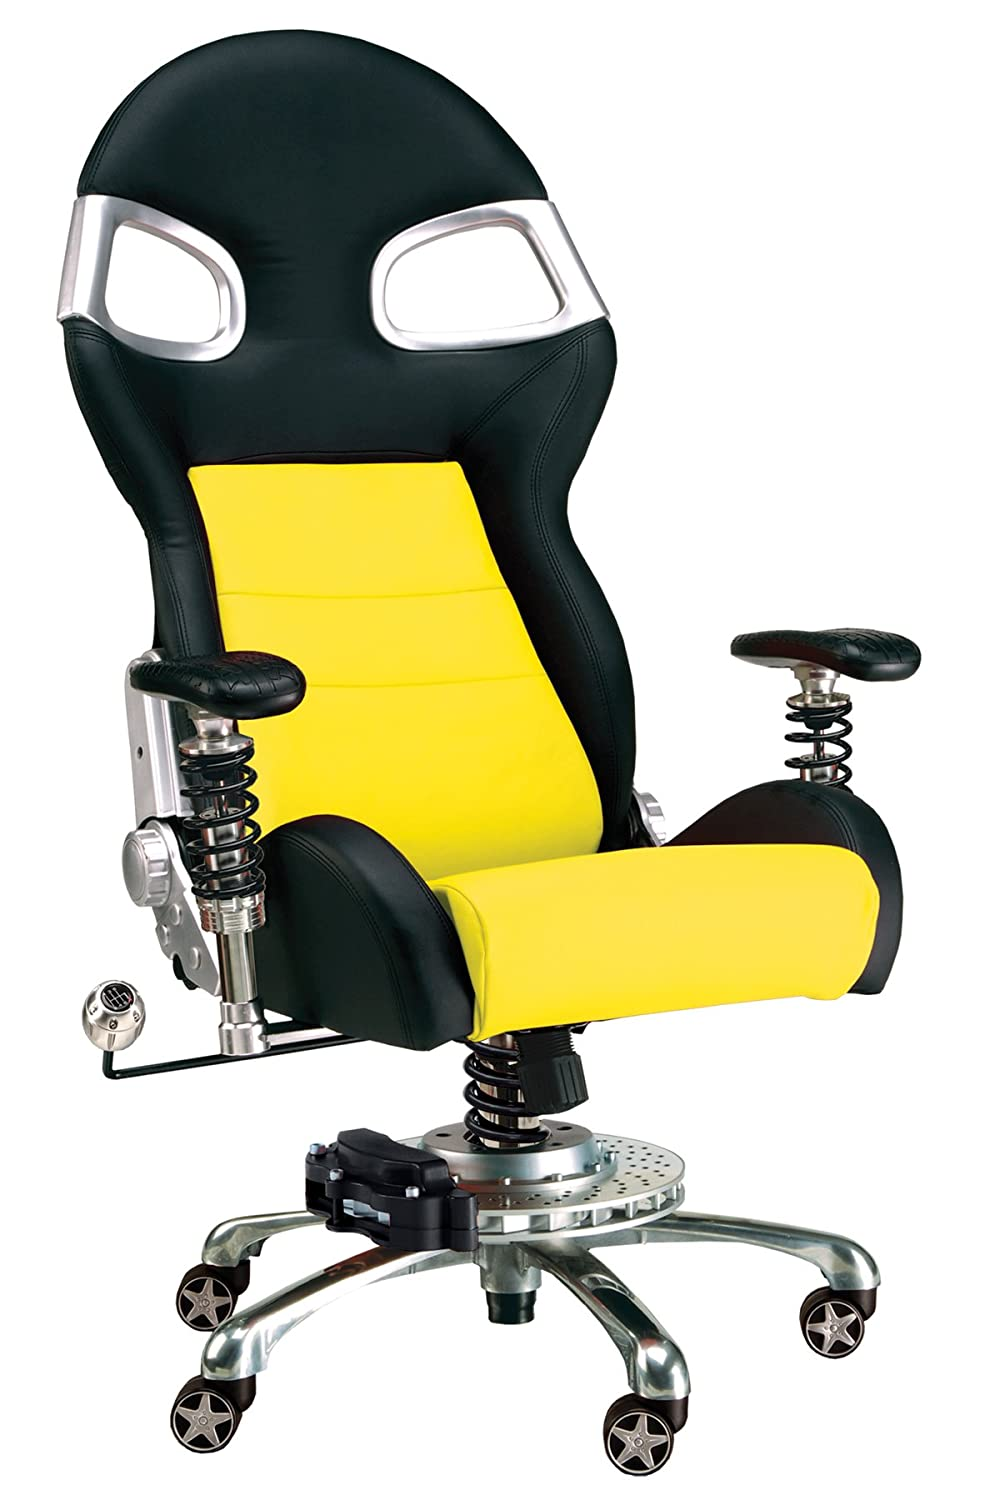 unusual office chairs. amazoncom pitstop furniture f08000y yellow lxe office chair automotive unusual chairs a